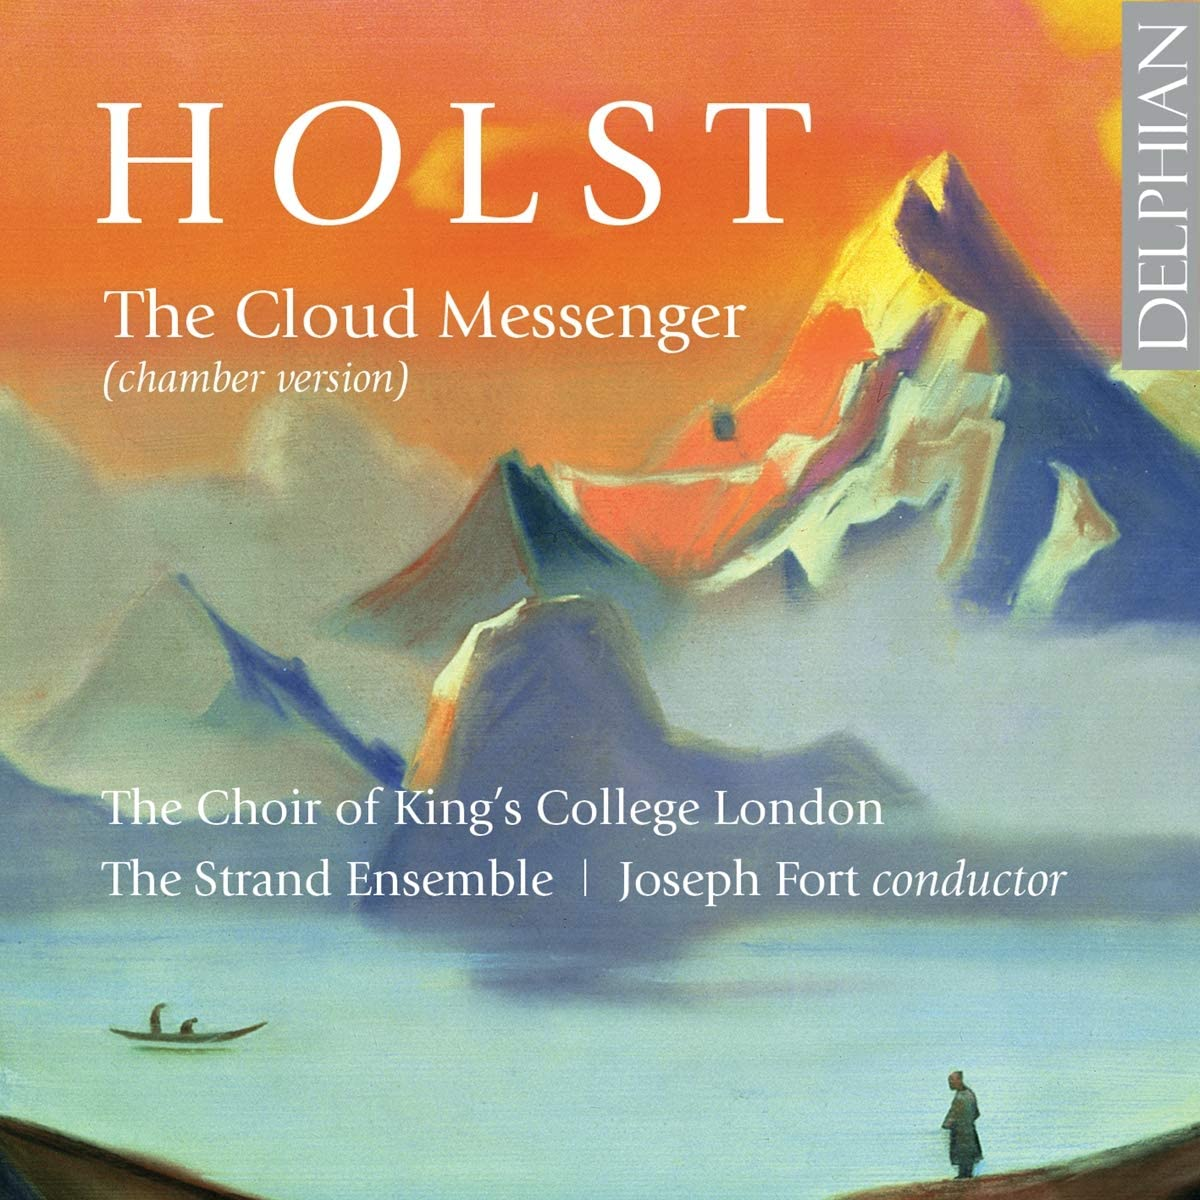 Review of HOLST The Cloud Messenger